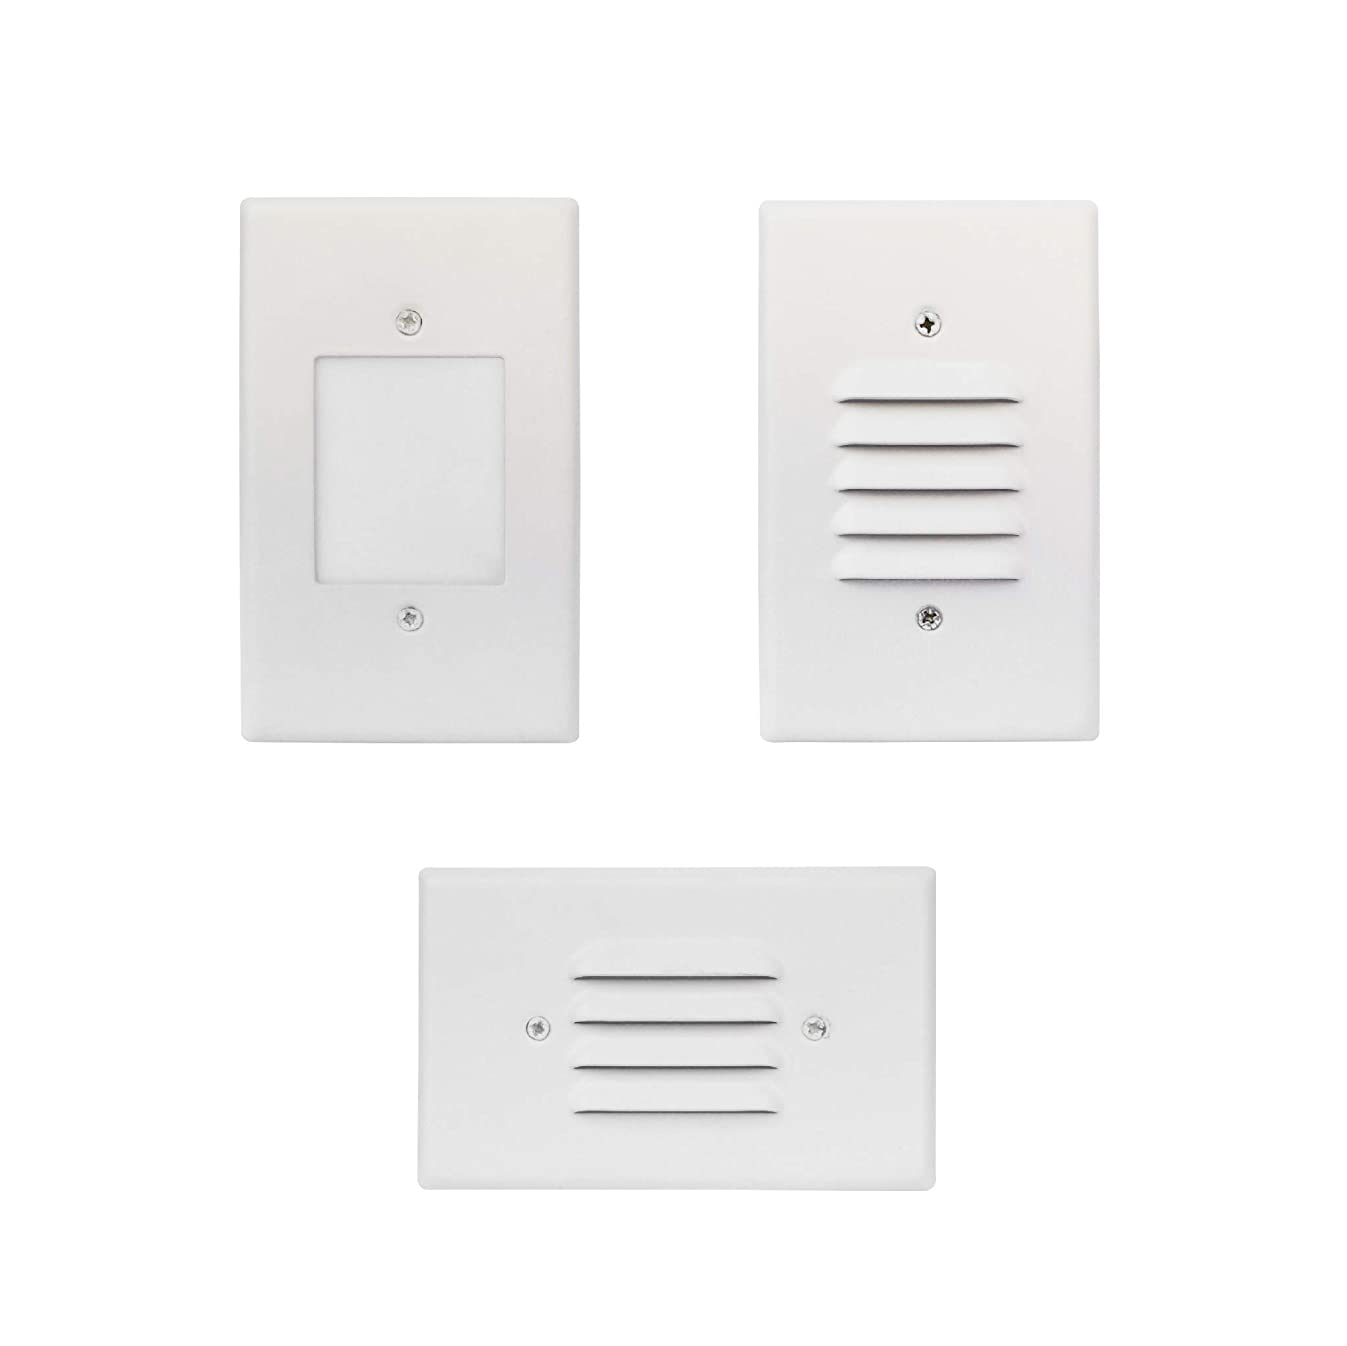 LED 2W Step Light White Finish (4 Pack) Interchangeable Plate Flat Frosted (Horizontal Louver/Vertical Louver) 10 YR Warranty; Waterproof; Dimmable; 120V; 150 Lumnes (Warm White 3000K)